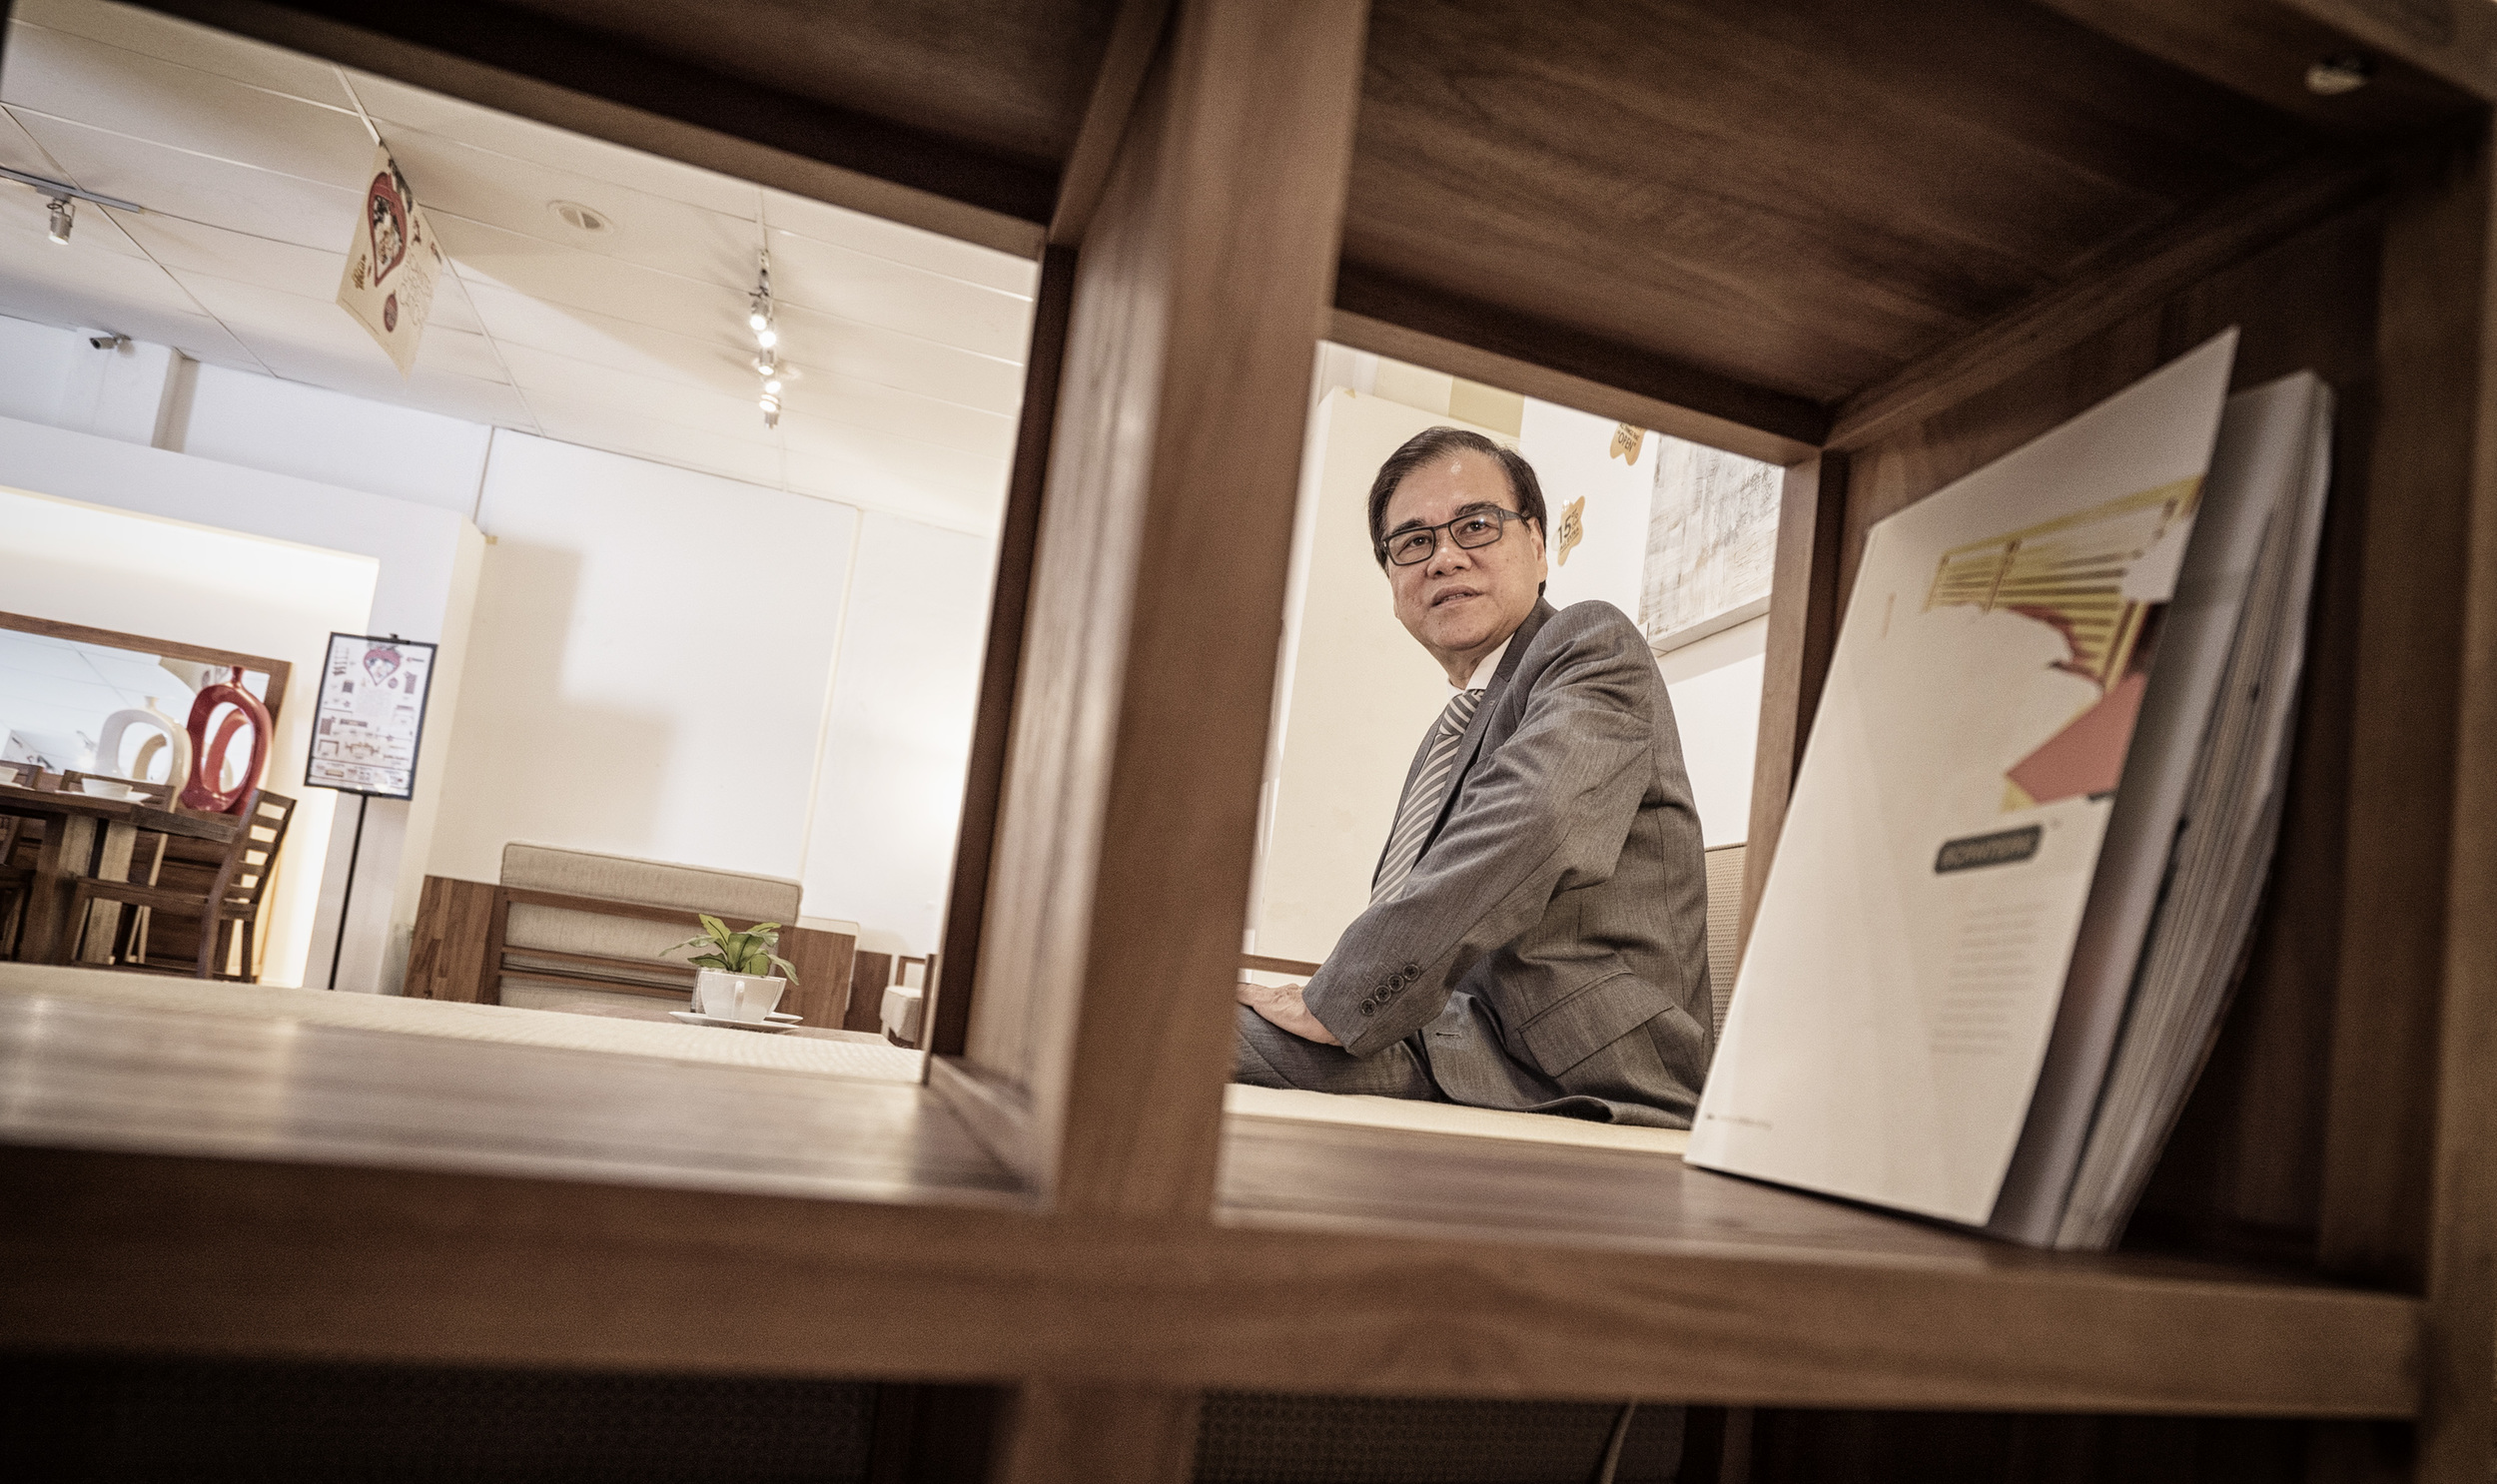 Lim Pok Chin, owner of household name Scanteak, went bust twice in the furniture business but now owns 100 stores in Taiwan.